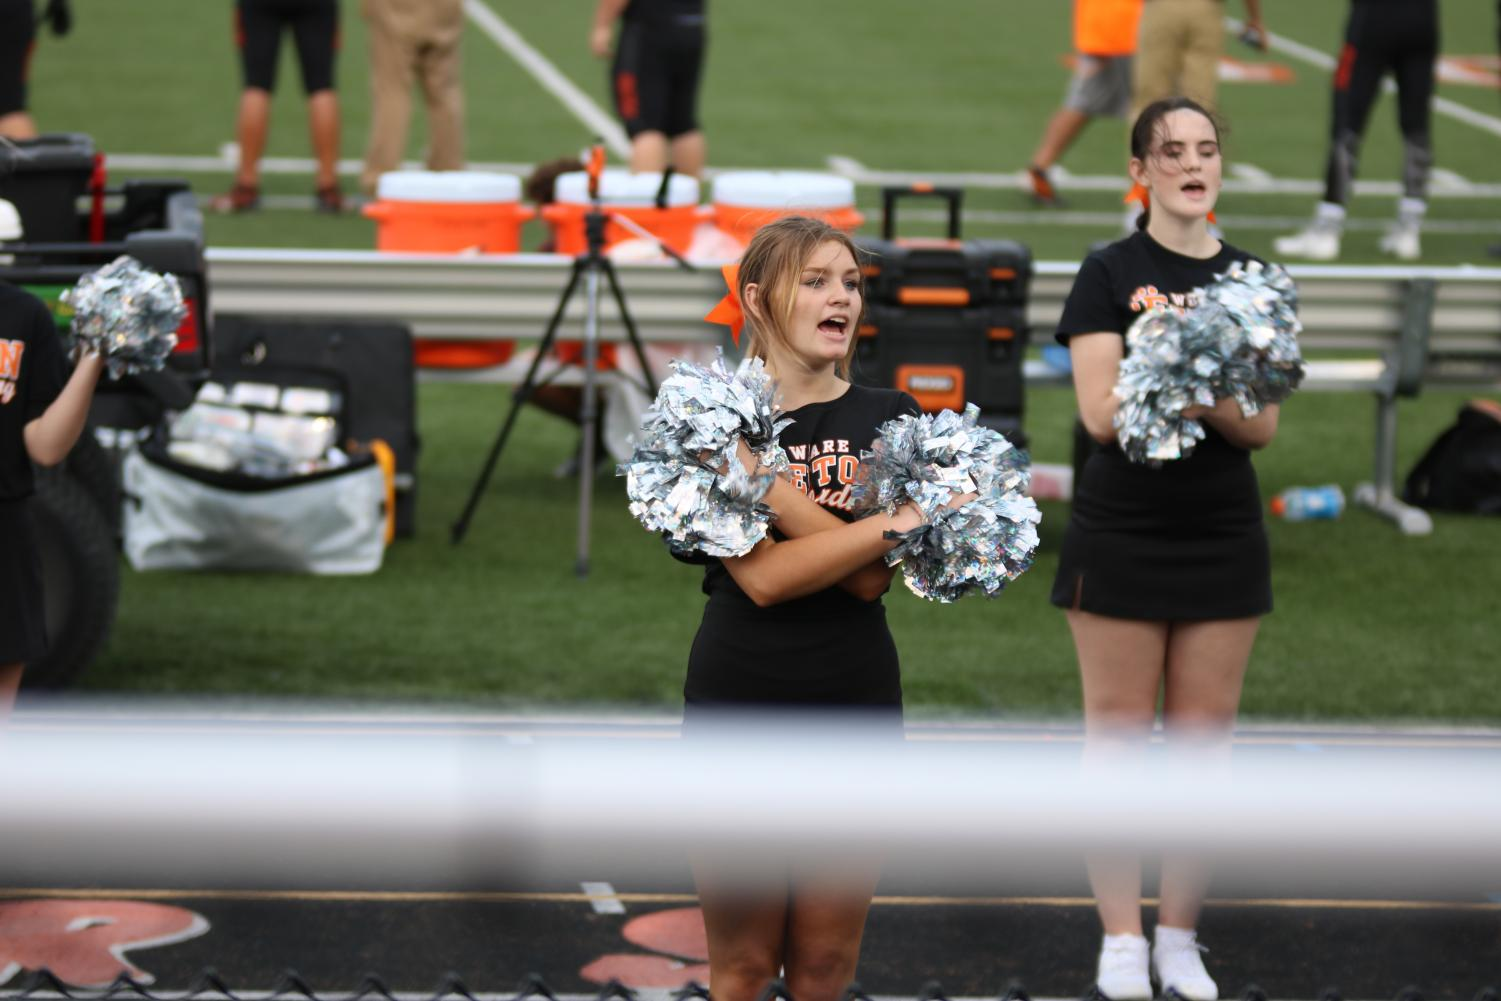 Cheering for the Fenton JV Football team during their first home game, Sophomore Briana Bennett cheers on the defense as they faced their opponent: Kearlsey's JV Football team. The team won against Kearsley on a hot August night, making them 1-1.